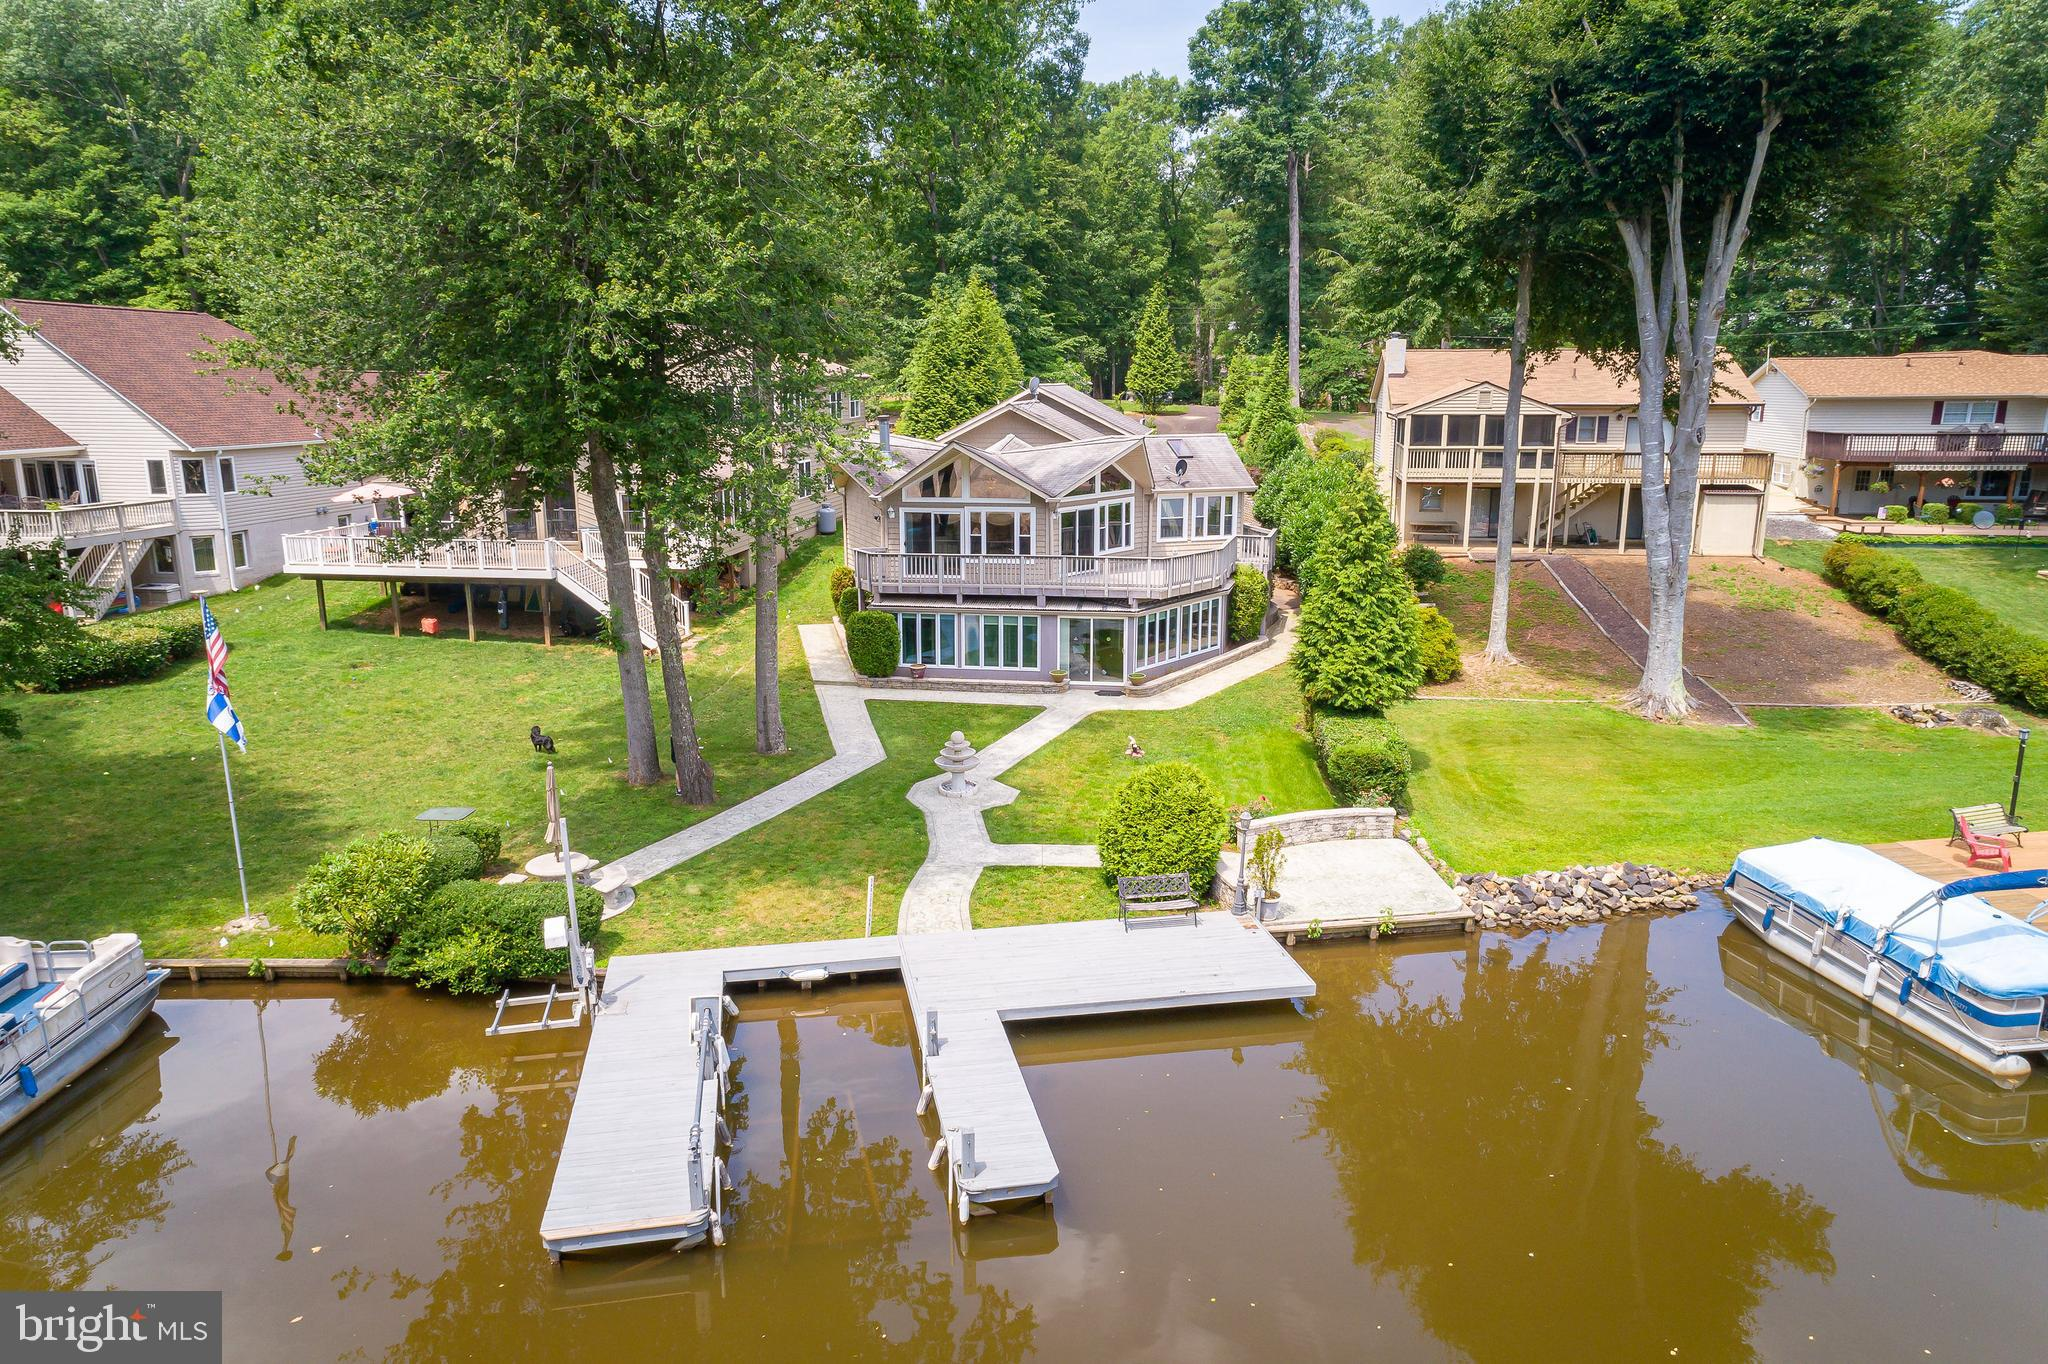 100 Harbourview Dr, Locust Grove, VA, 22508